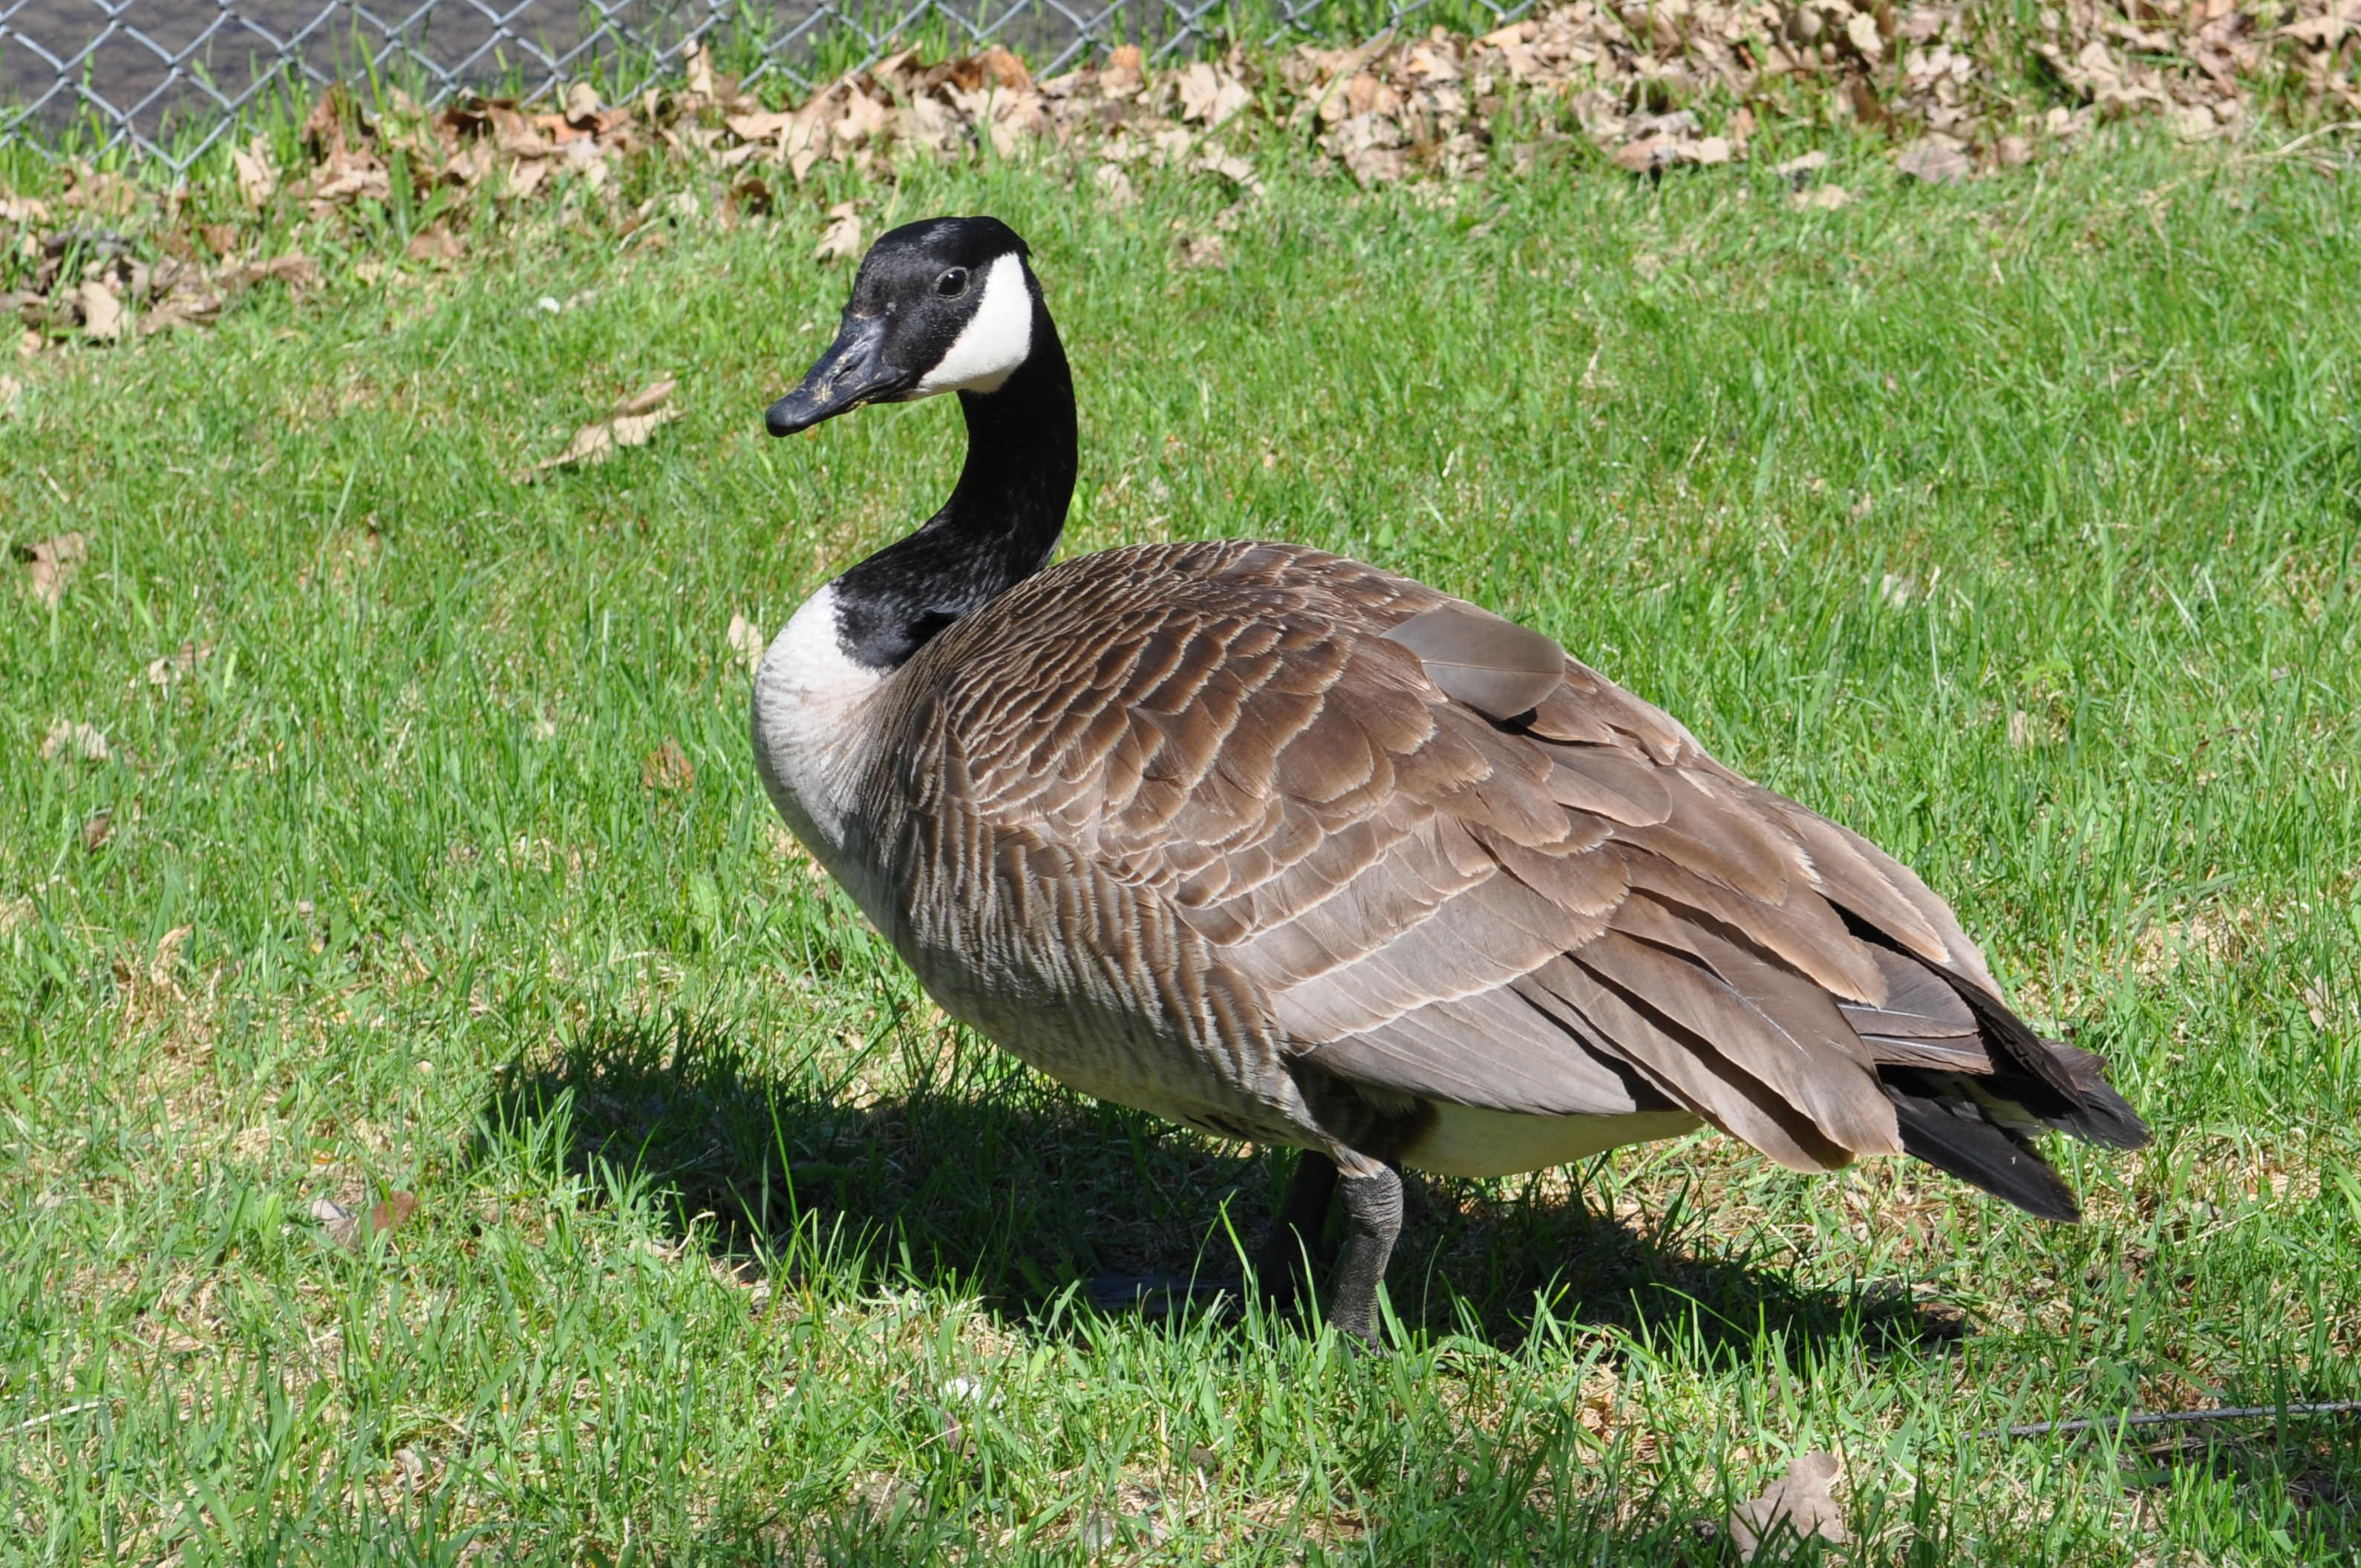 Canada goose (Branta canadensis) standing in the grass in Winnipeg, Canada, carefully watches nearby humans. Photo taken on May 23, 2016.